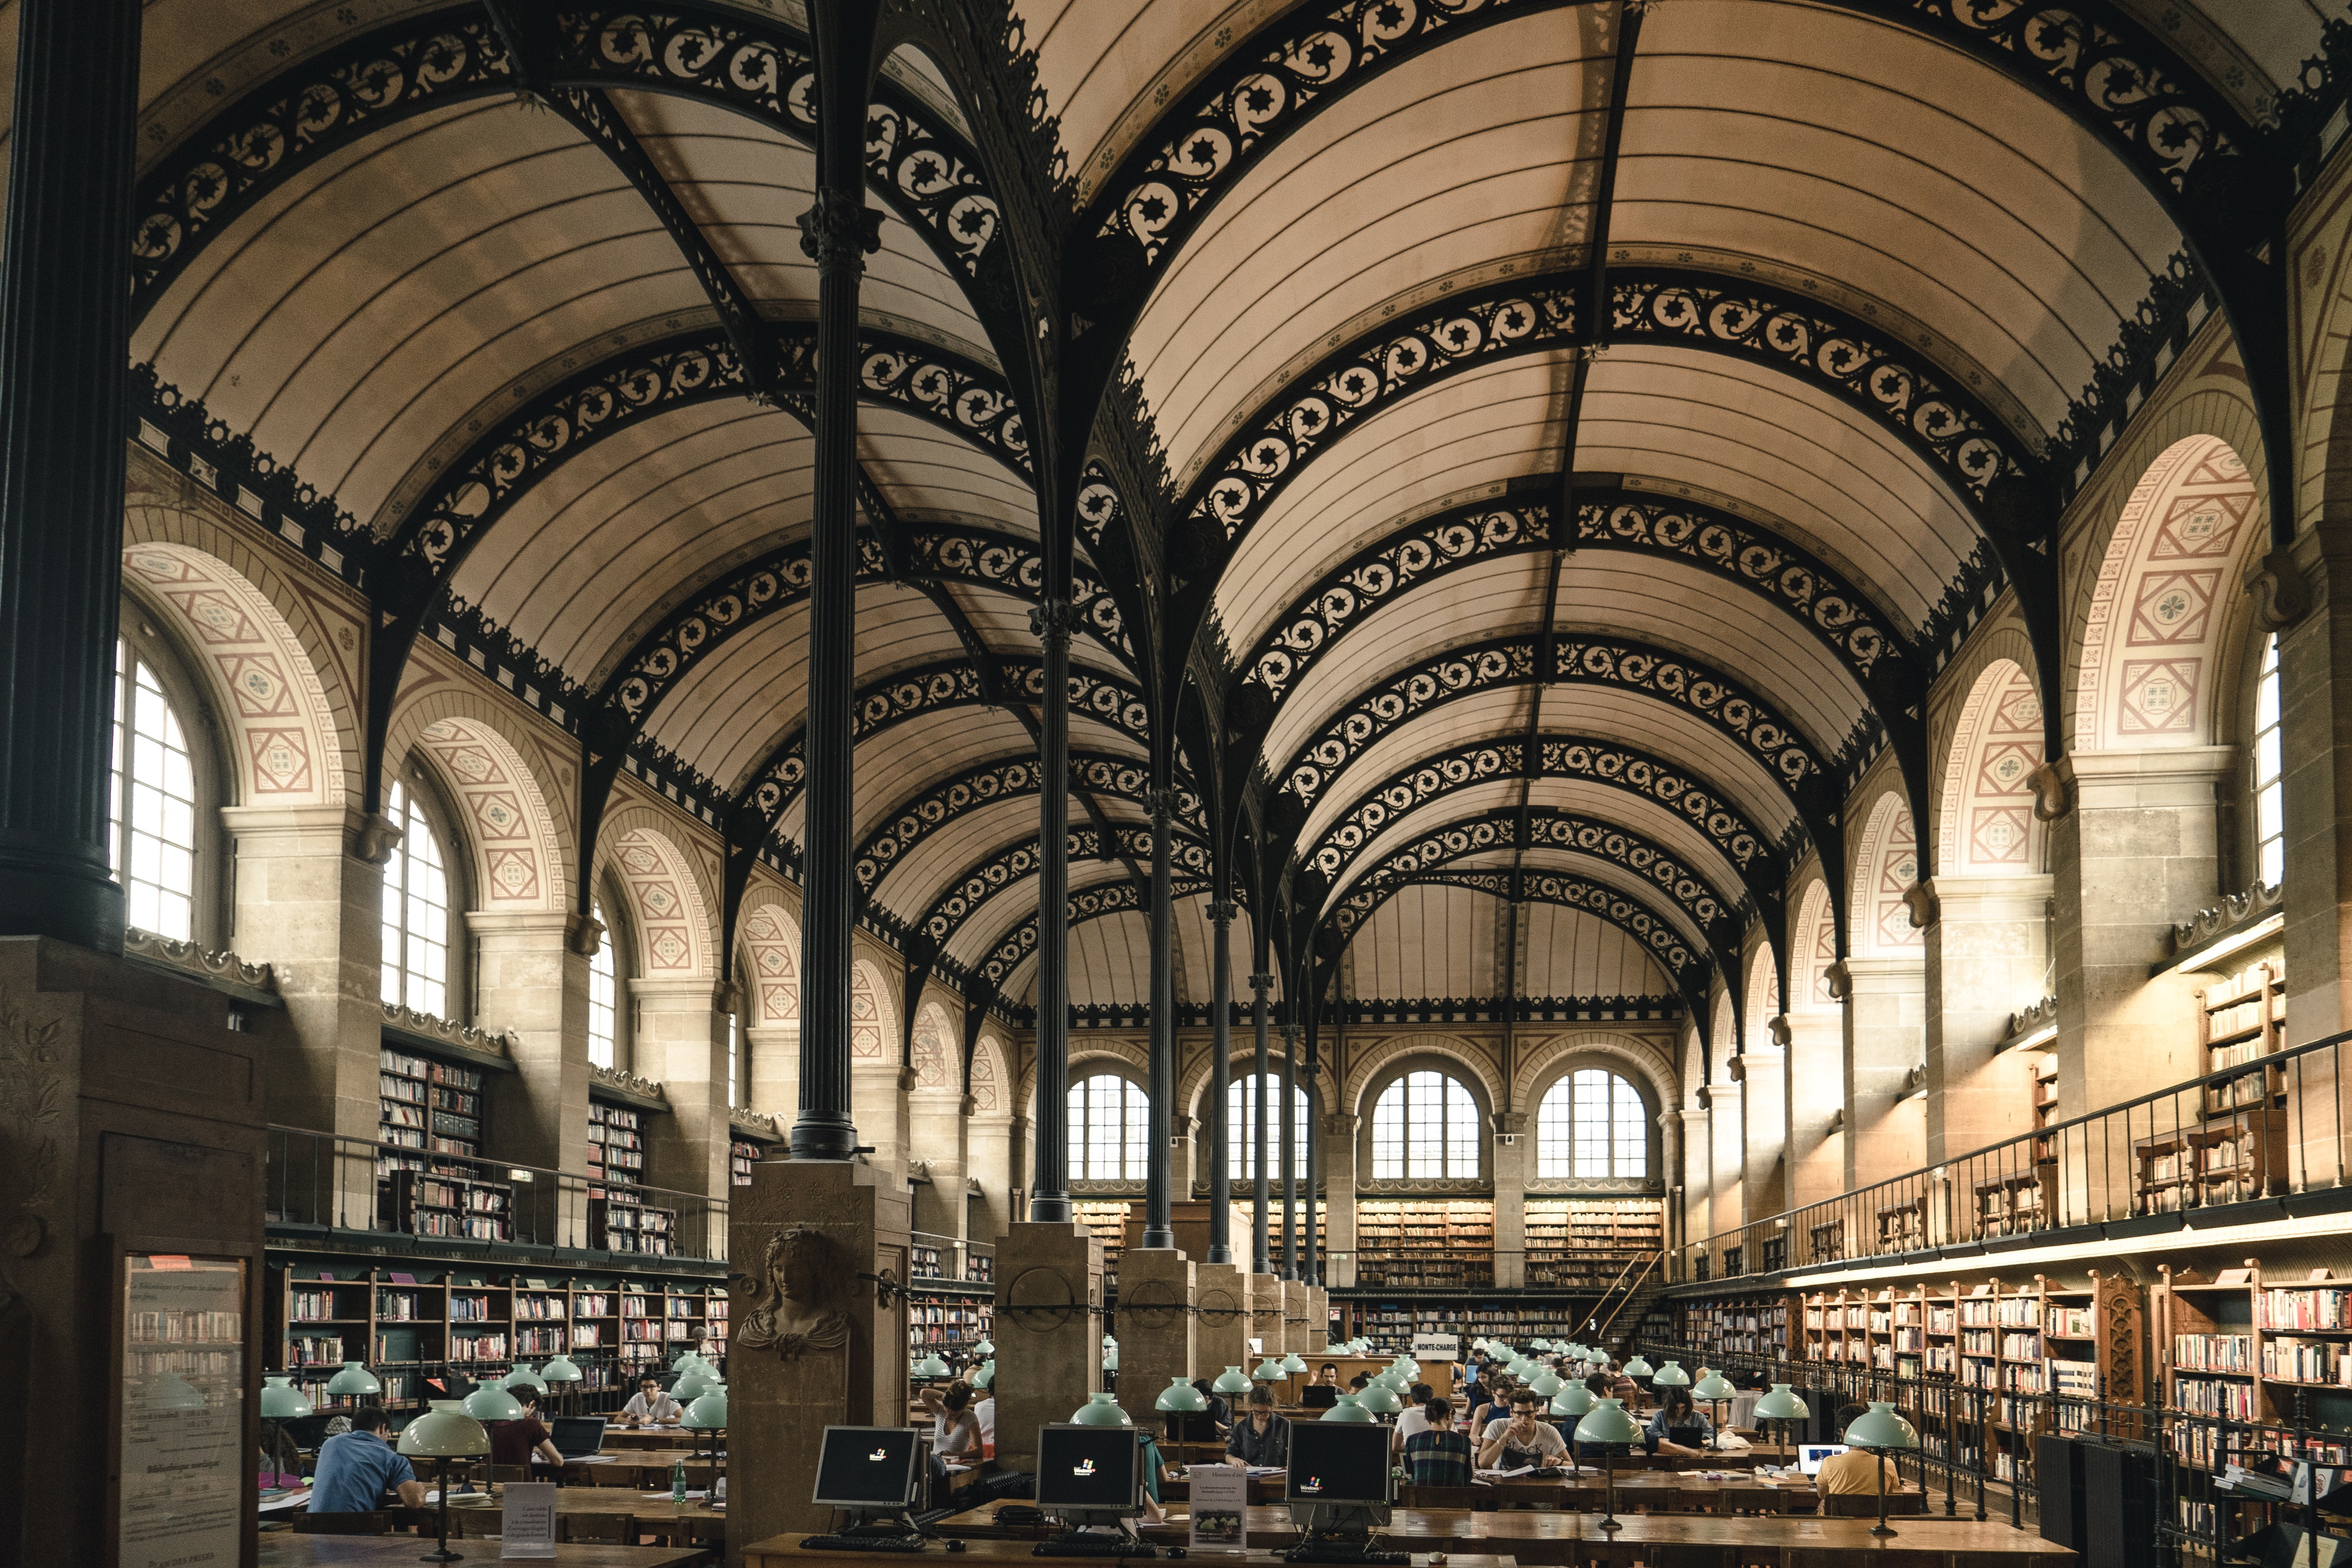 A college library.